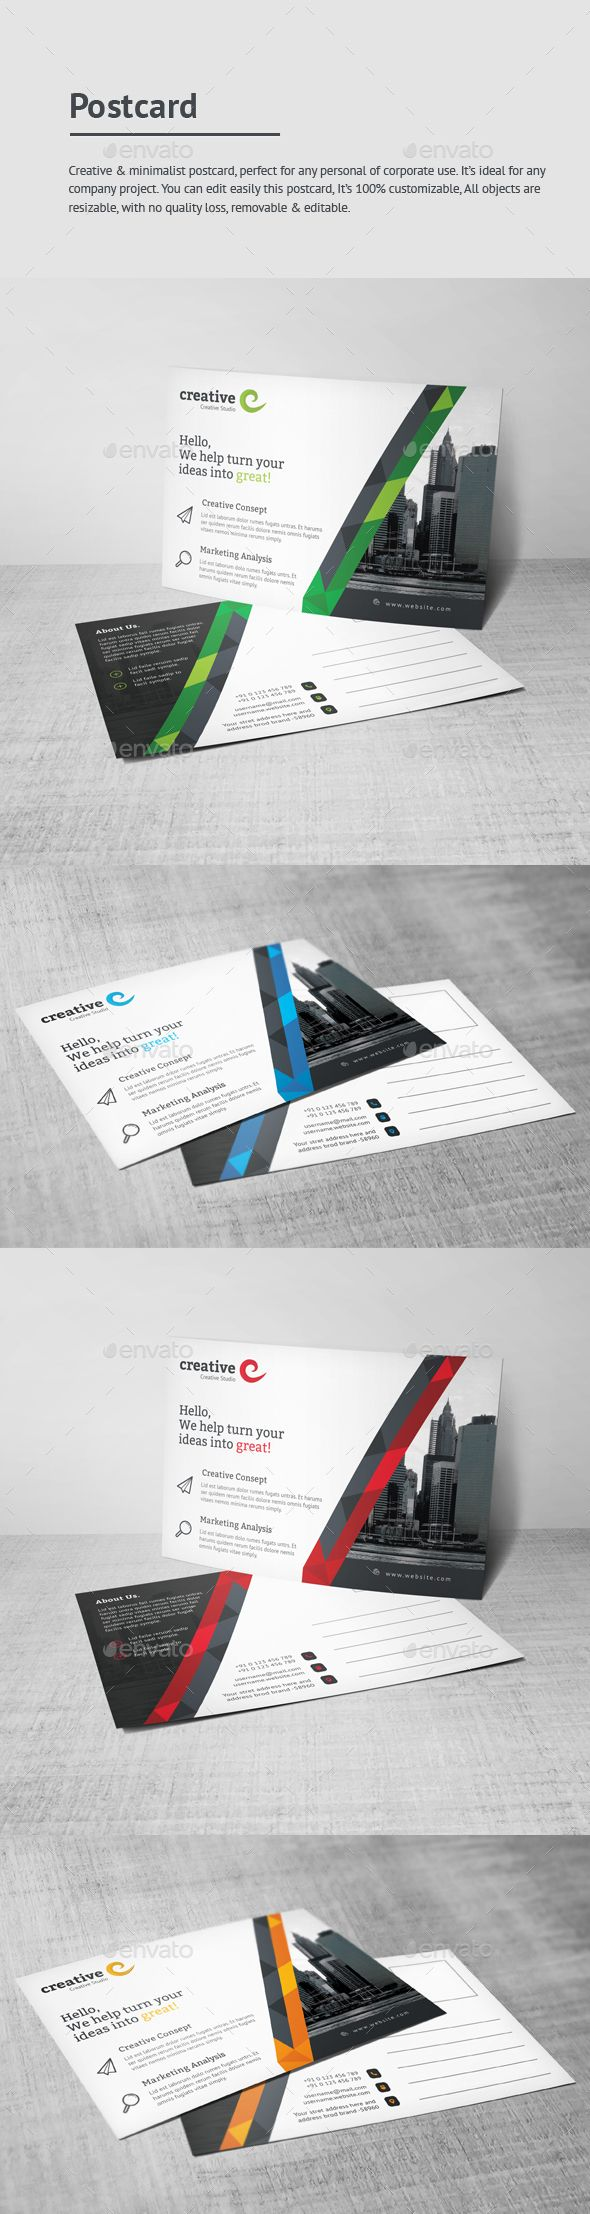 166 best Postcard Templates images on Pinterest | Postcard template ...